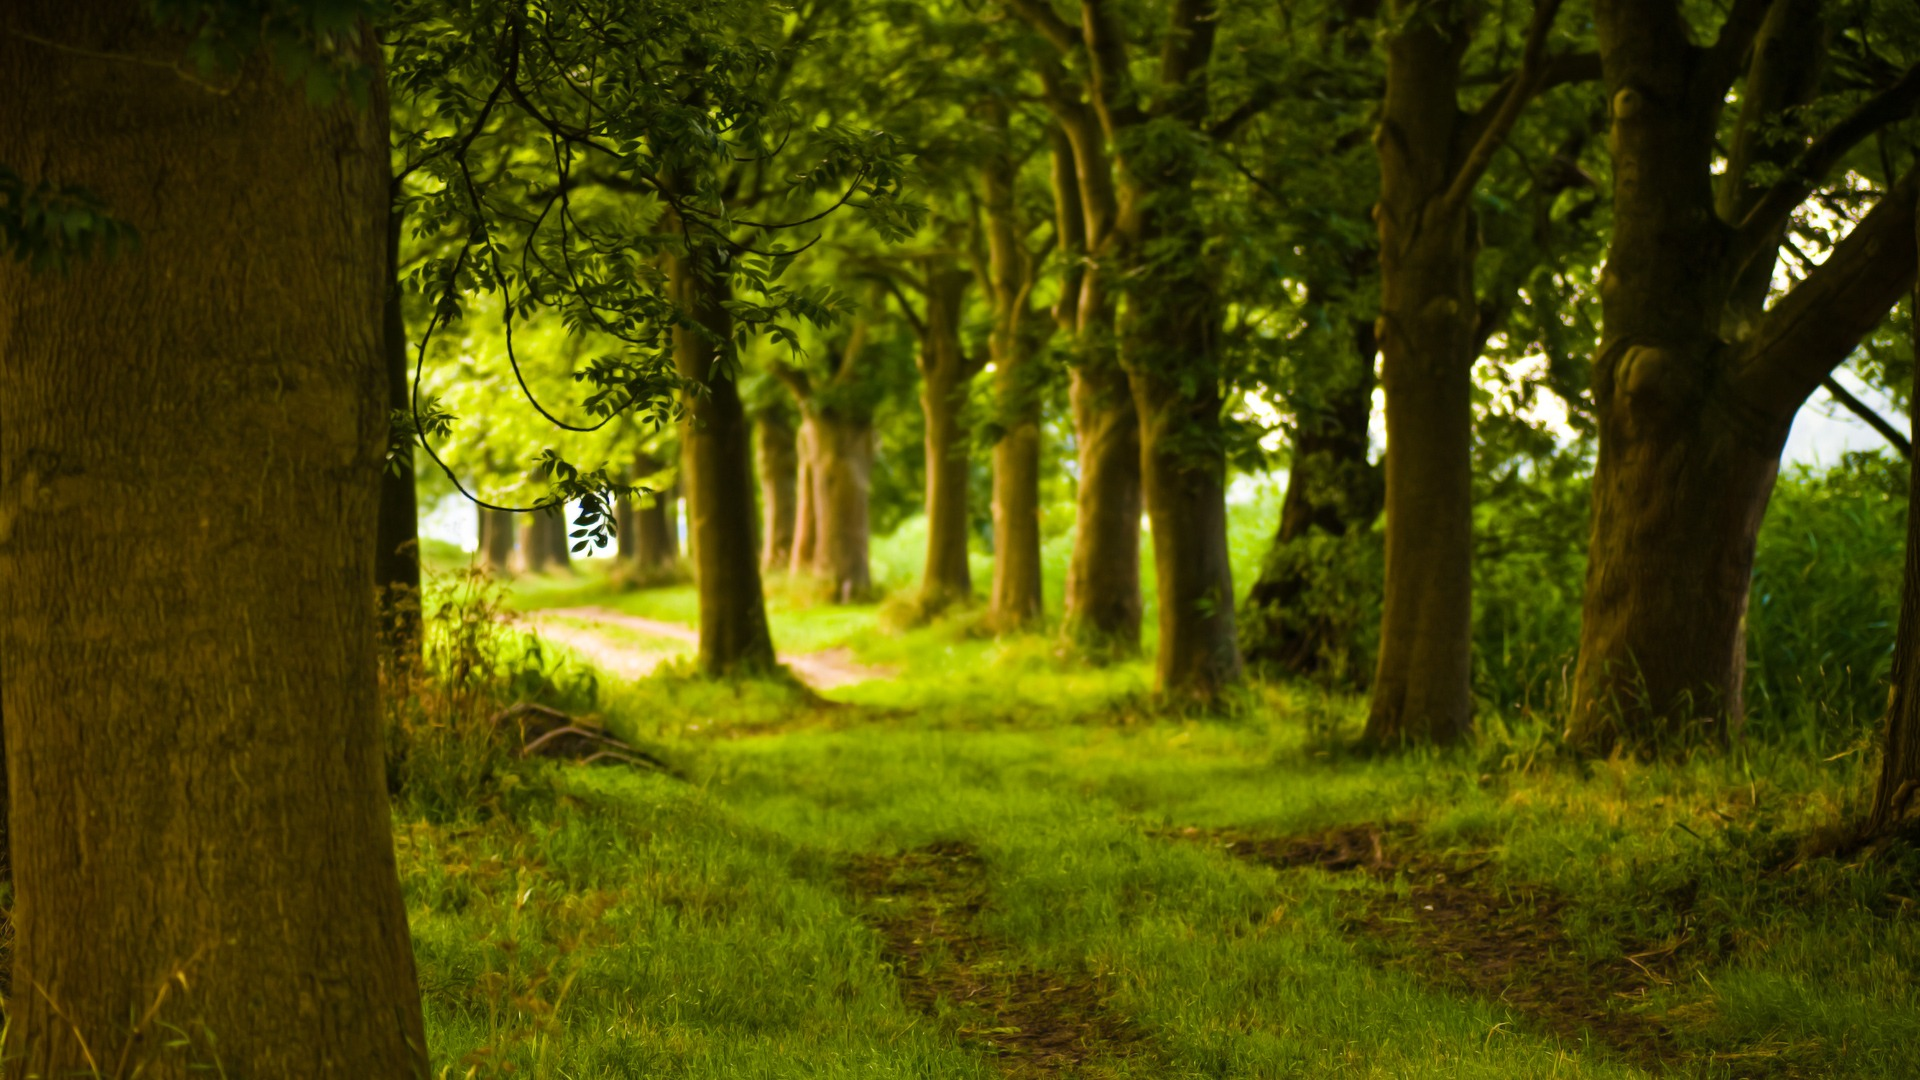 magical forest wallpaper landscape nature wallpapers in jpg format